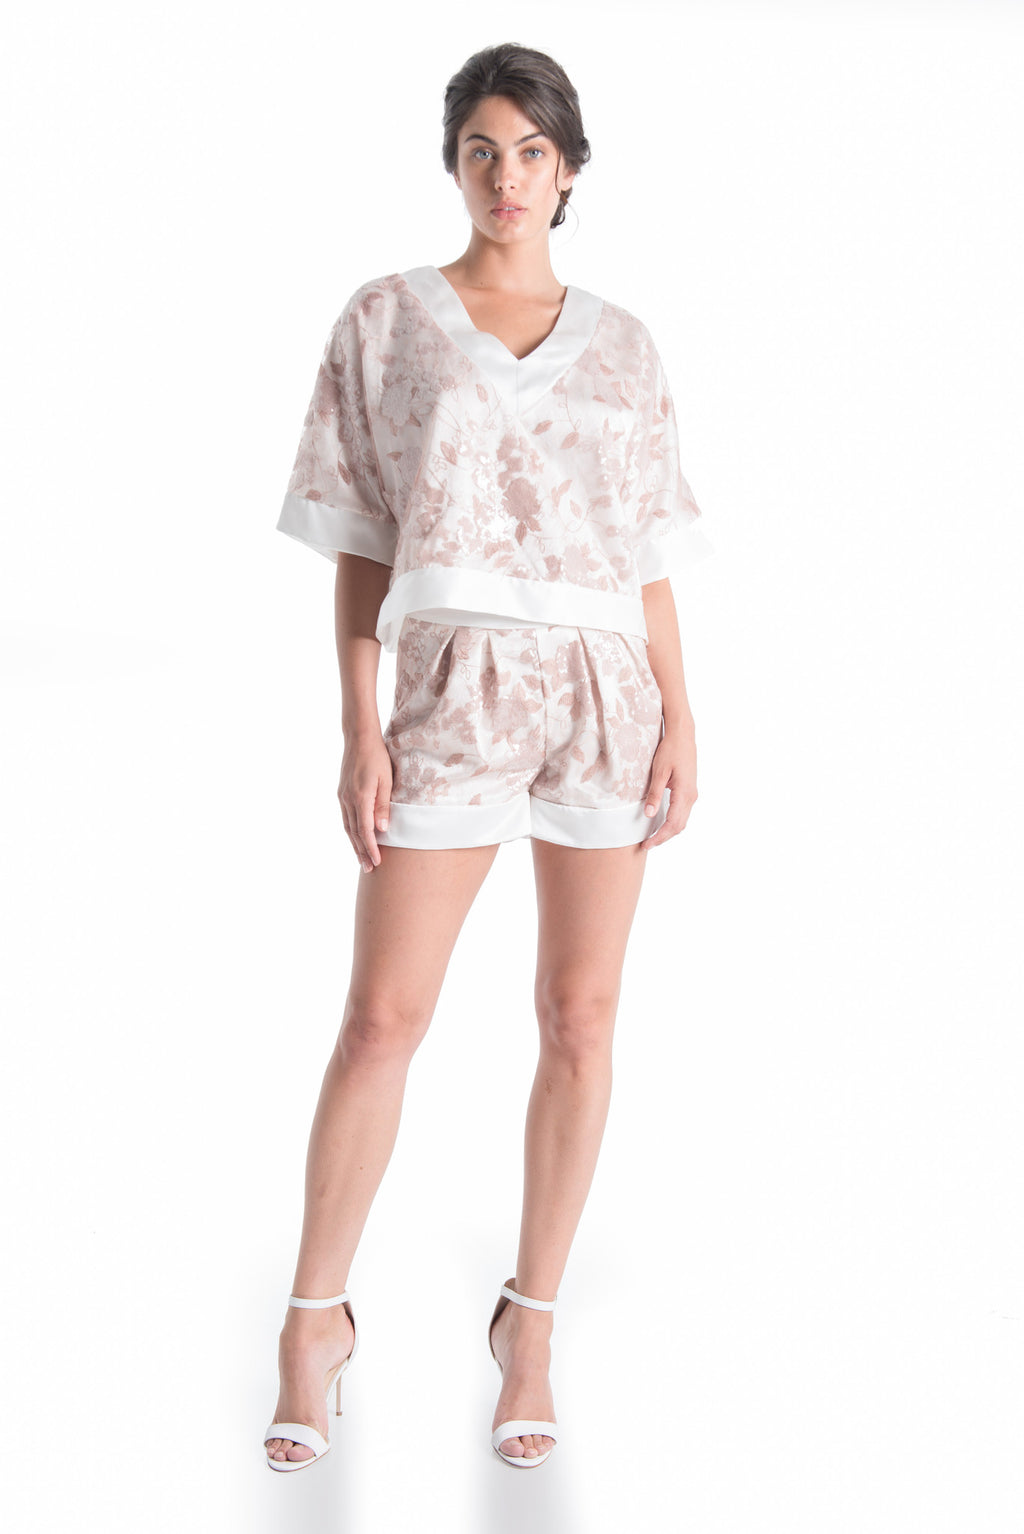 FLEUR Oversized Silk Top - ROMANTIC DUSTY | SAMPLE - HAUS OF SONG